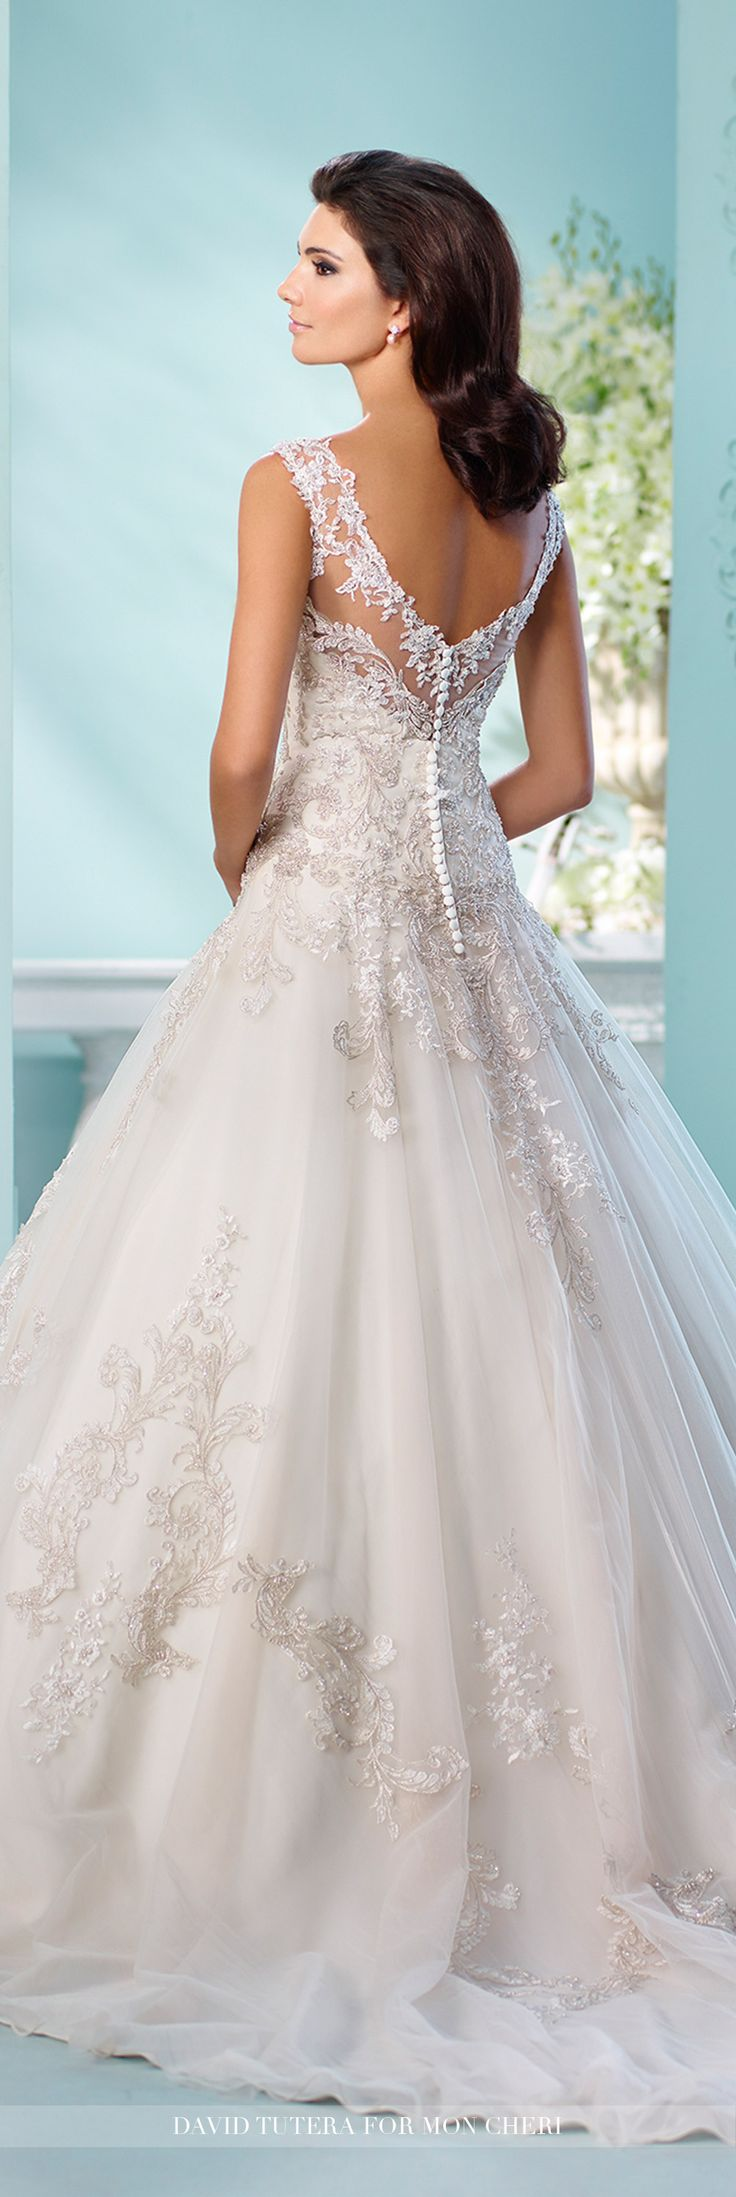 wedding dress 216250 lapis david tutera david tutera wedding gowns